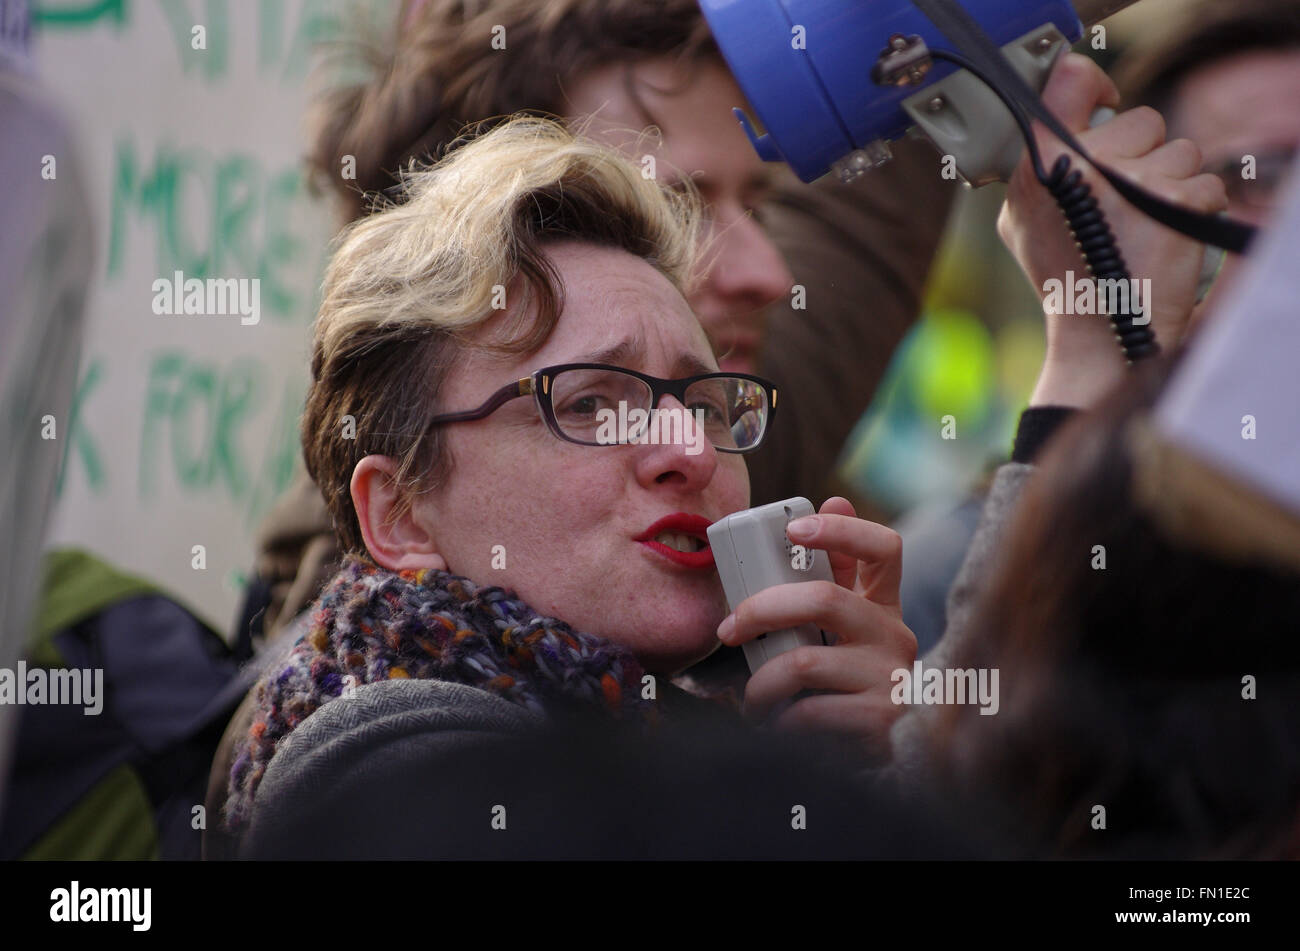 London, UK. 12th March 2016. Cleaners contracted to work at Topshop clothing store protest outside the flagship - Stock Image